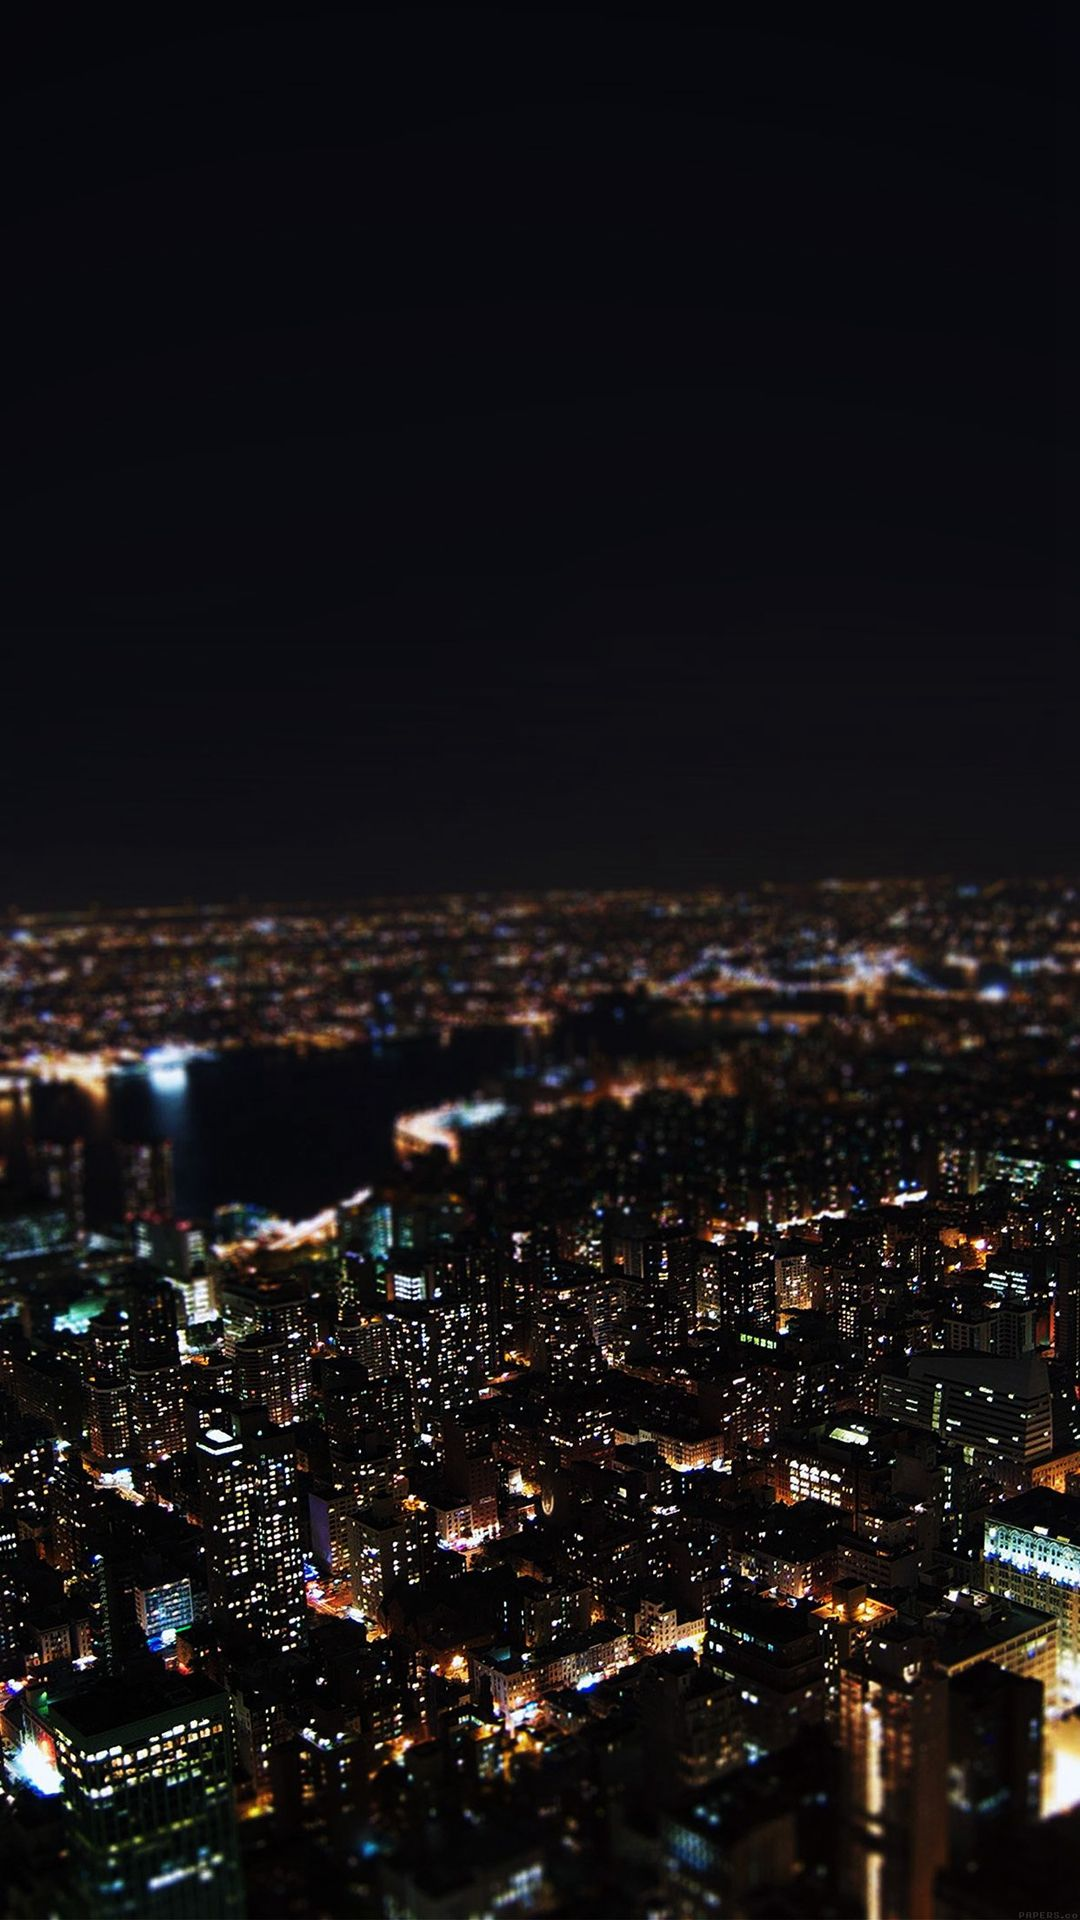 Dark Night City Building Skyview Iphone 6 Wallpaper Night Landscape City Wallpaper City Lights Wallpaper